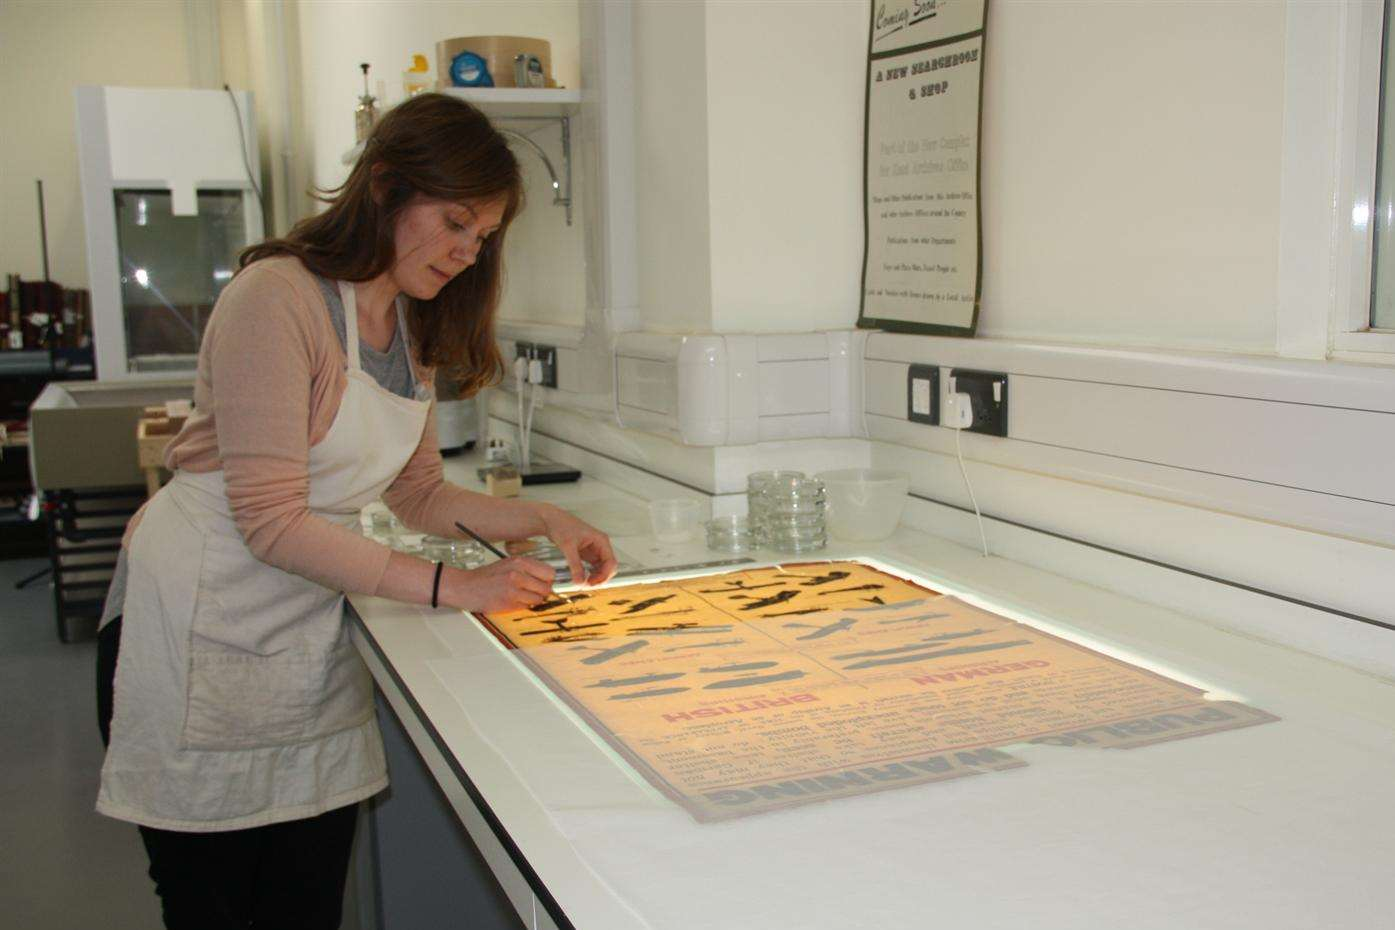 KCC conservation officer Macaulay Bristow works on restoring a poster from the First World War